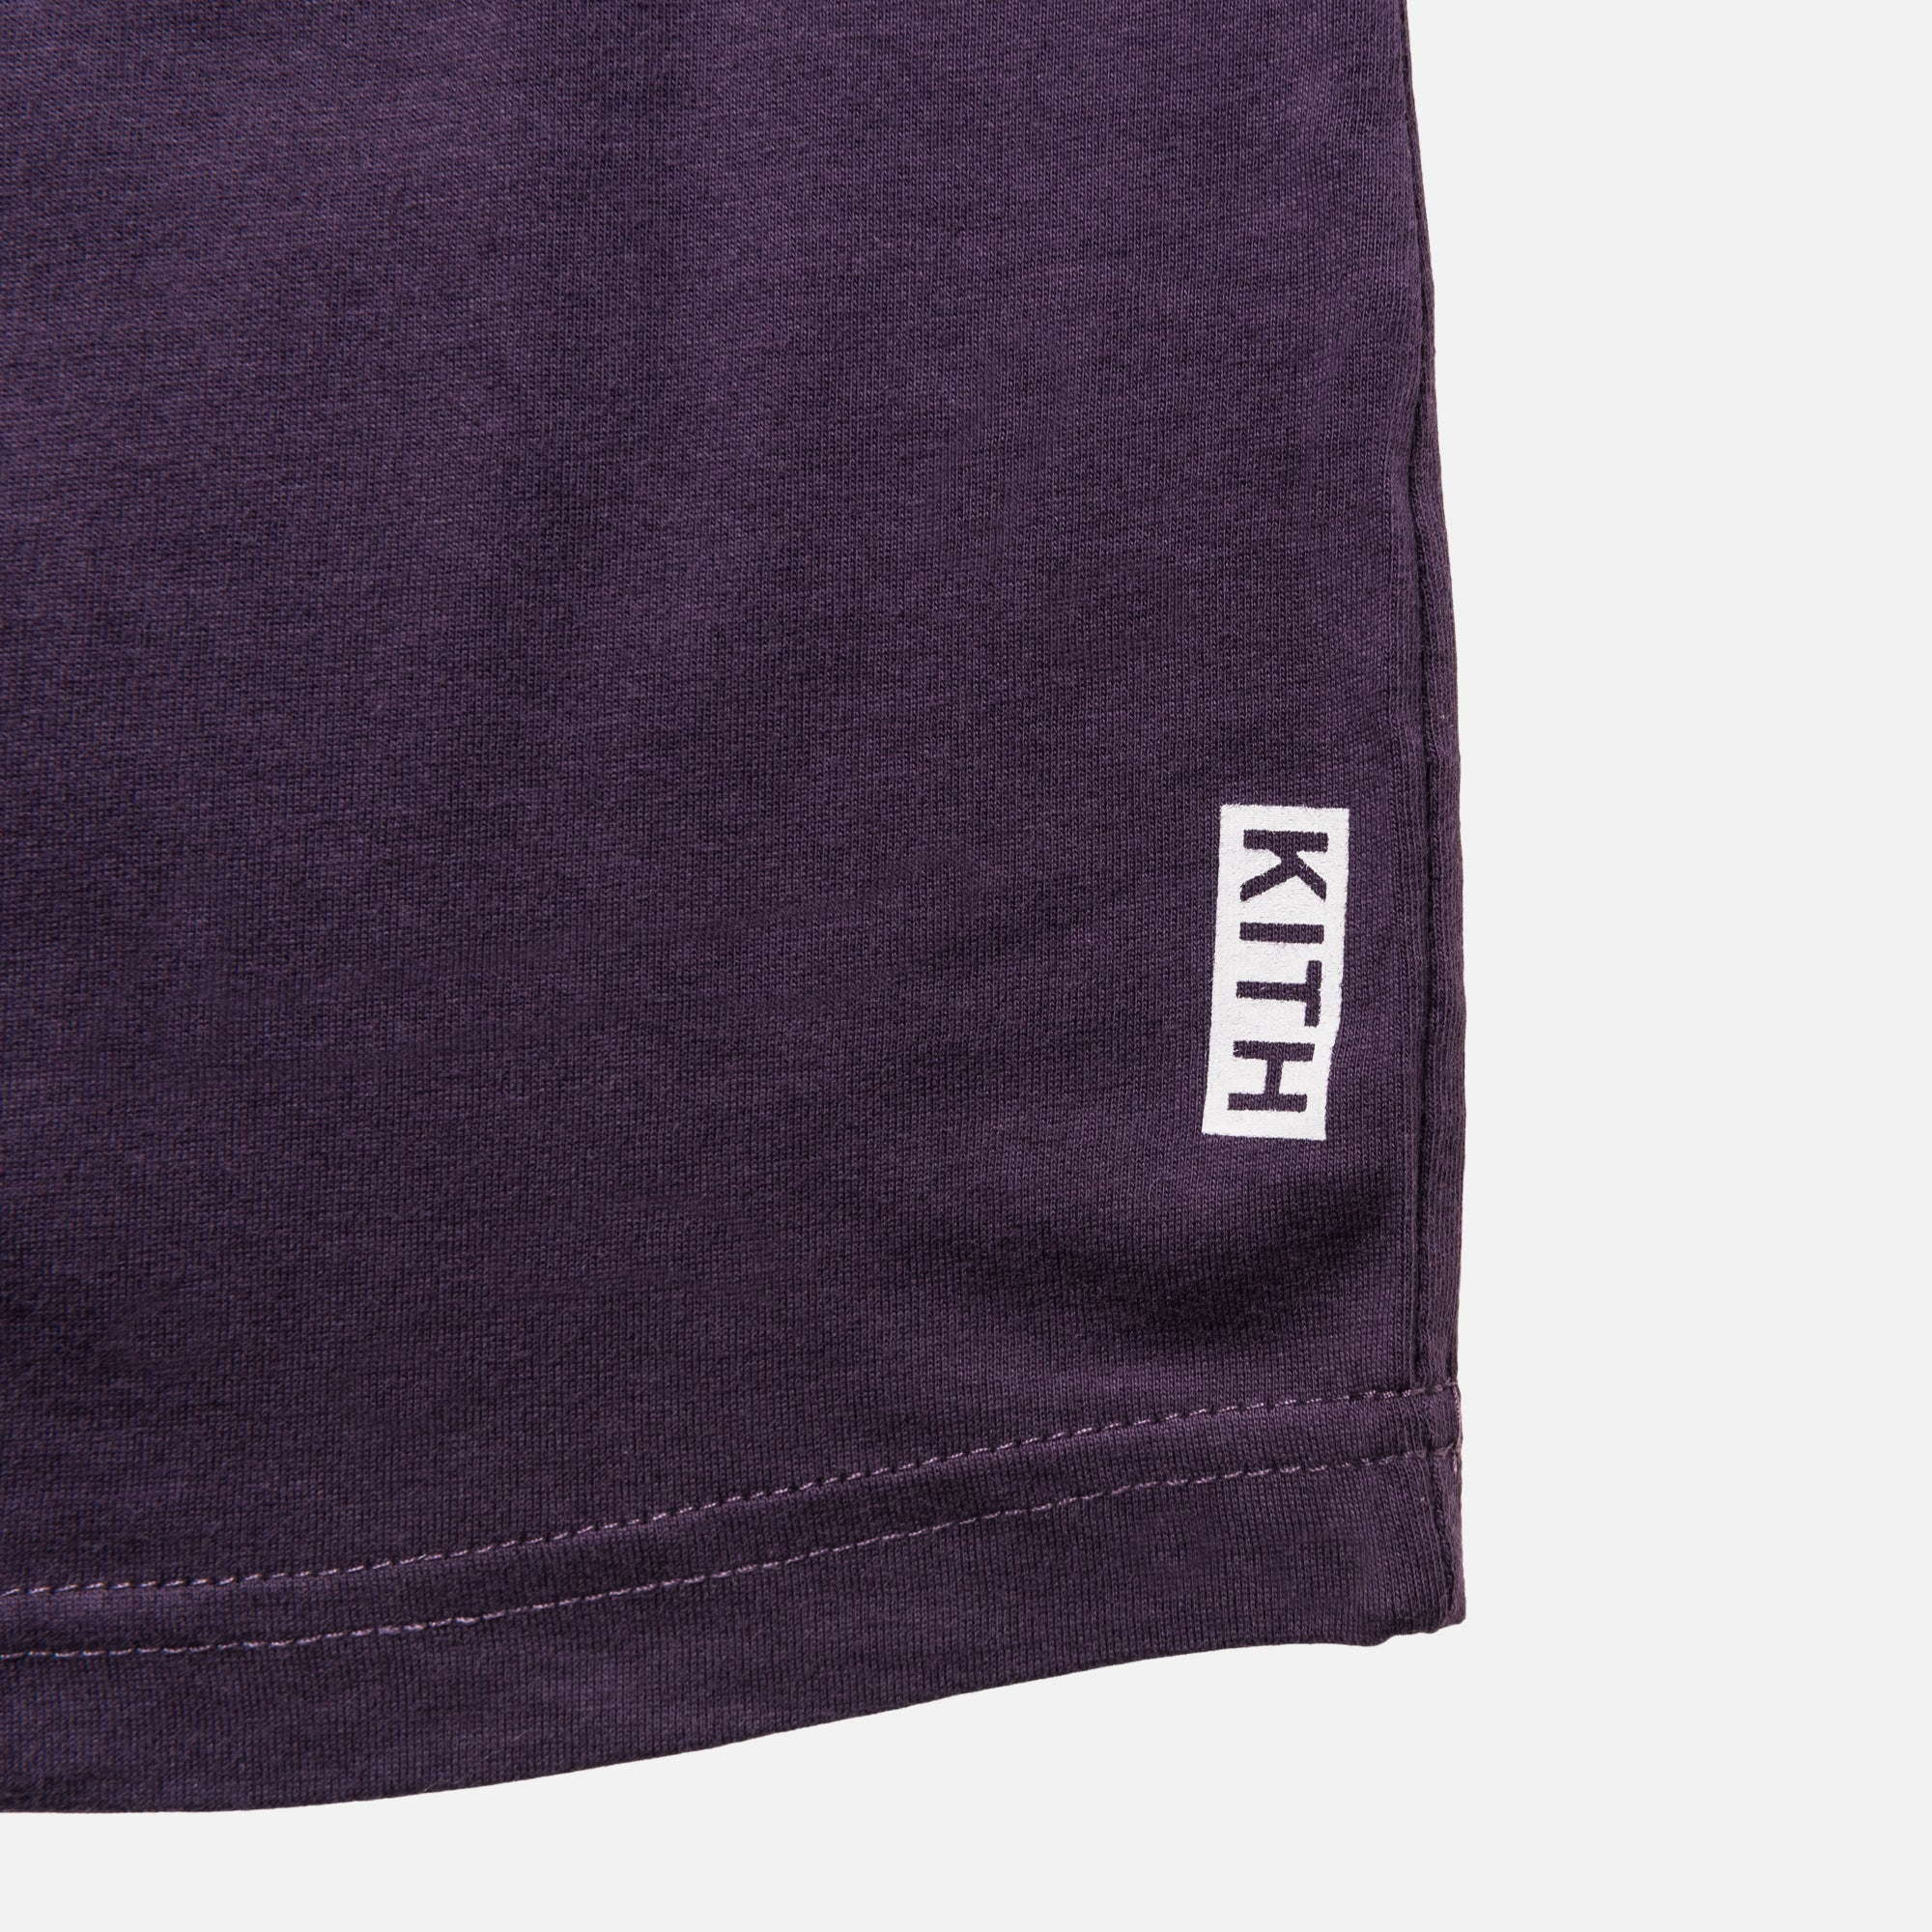 Kith Undershirt 3 Pack - Putty / Purple / Green